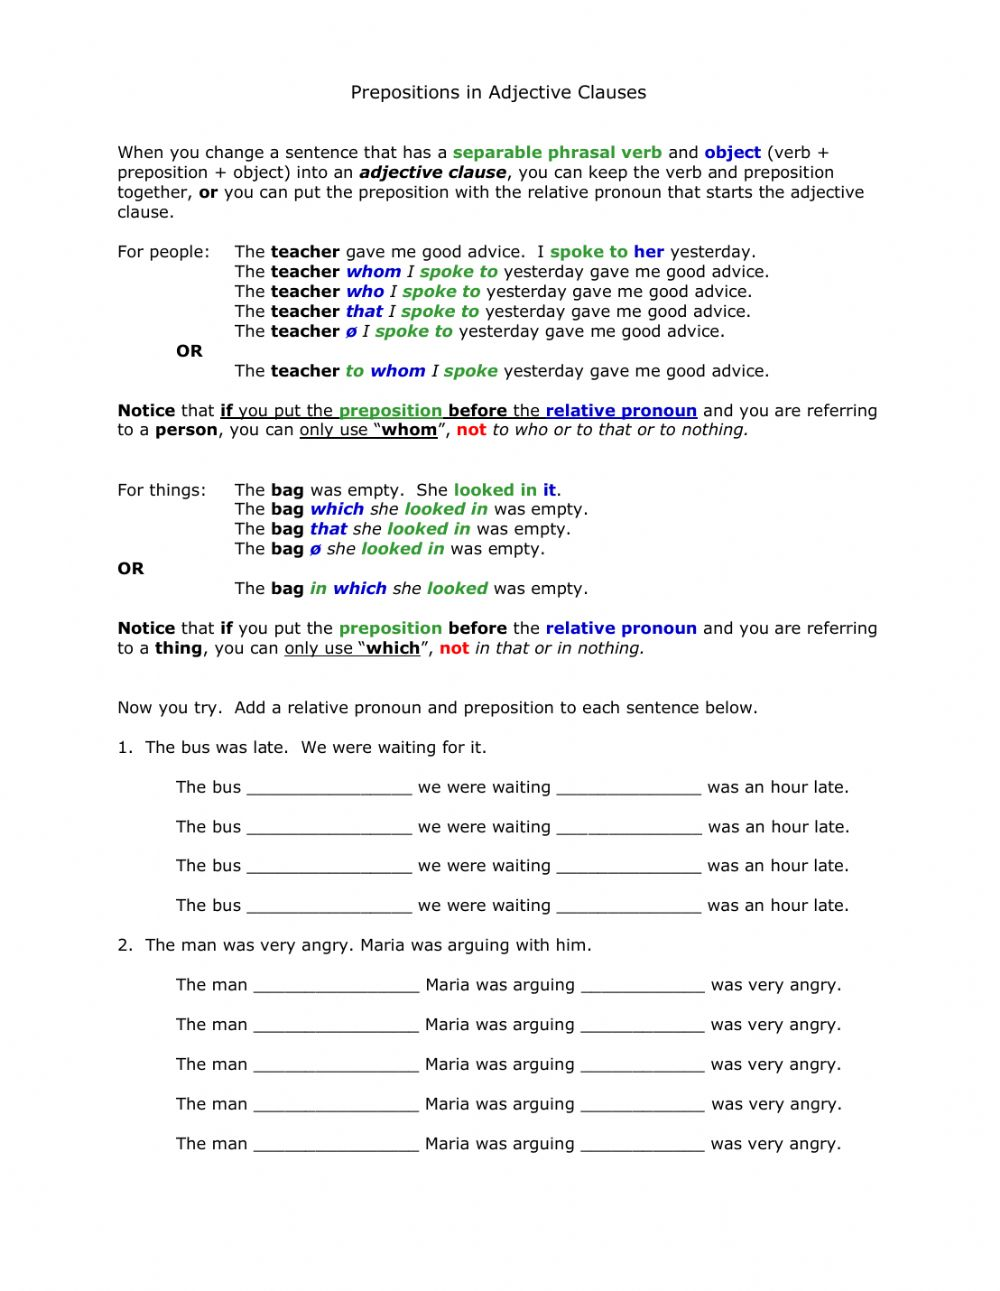 hight resolution of AG2 prepositions in adjectives clauses worksheet